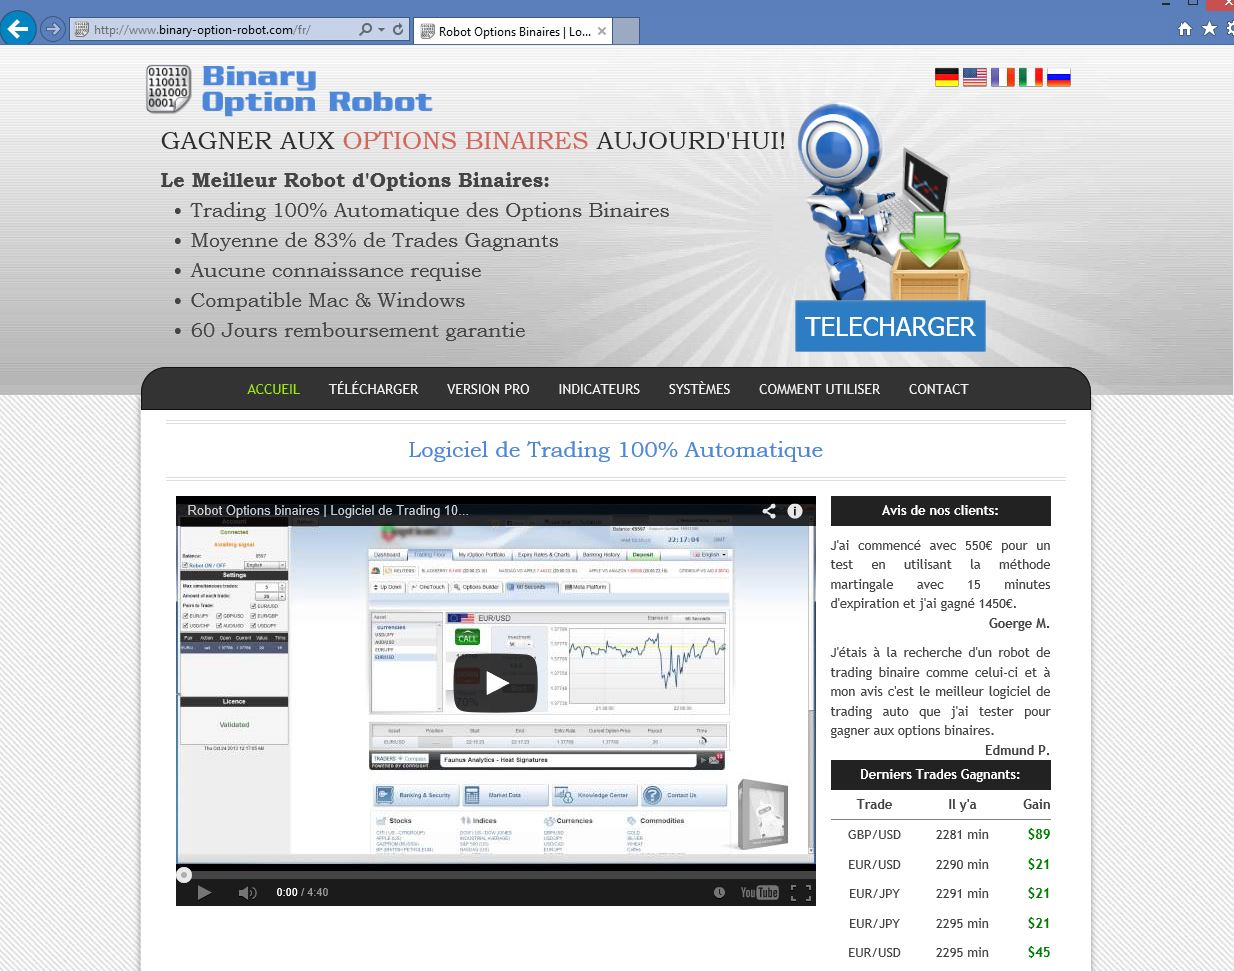 The binary option robot